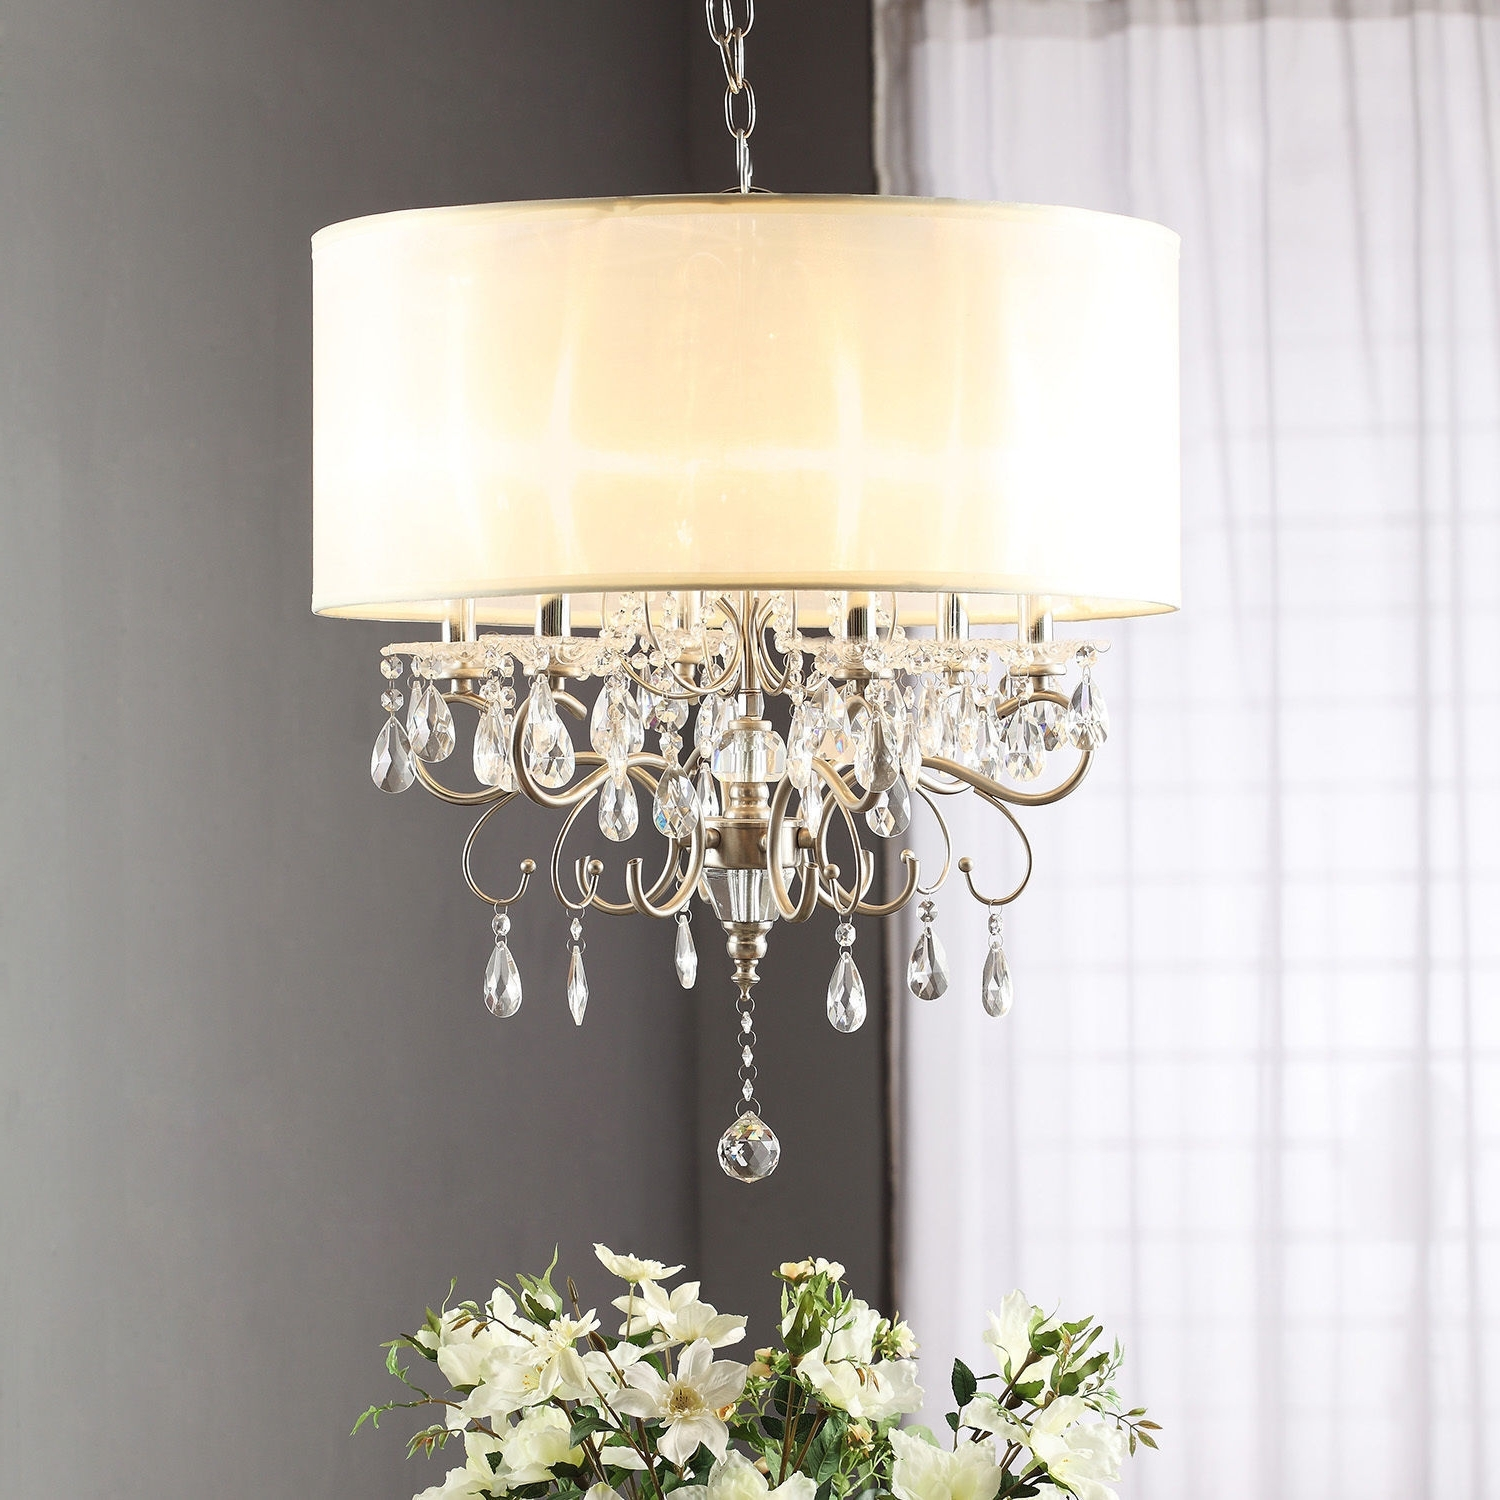 Cream Chandelier Lights Regarding Most Popular Drum Shade Chandelier With Crystals Brizzo Lighting Brass (View 7 of 15)